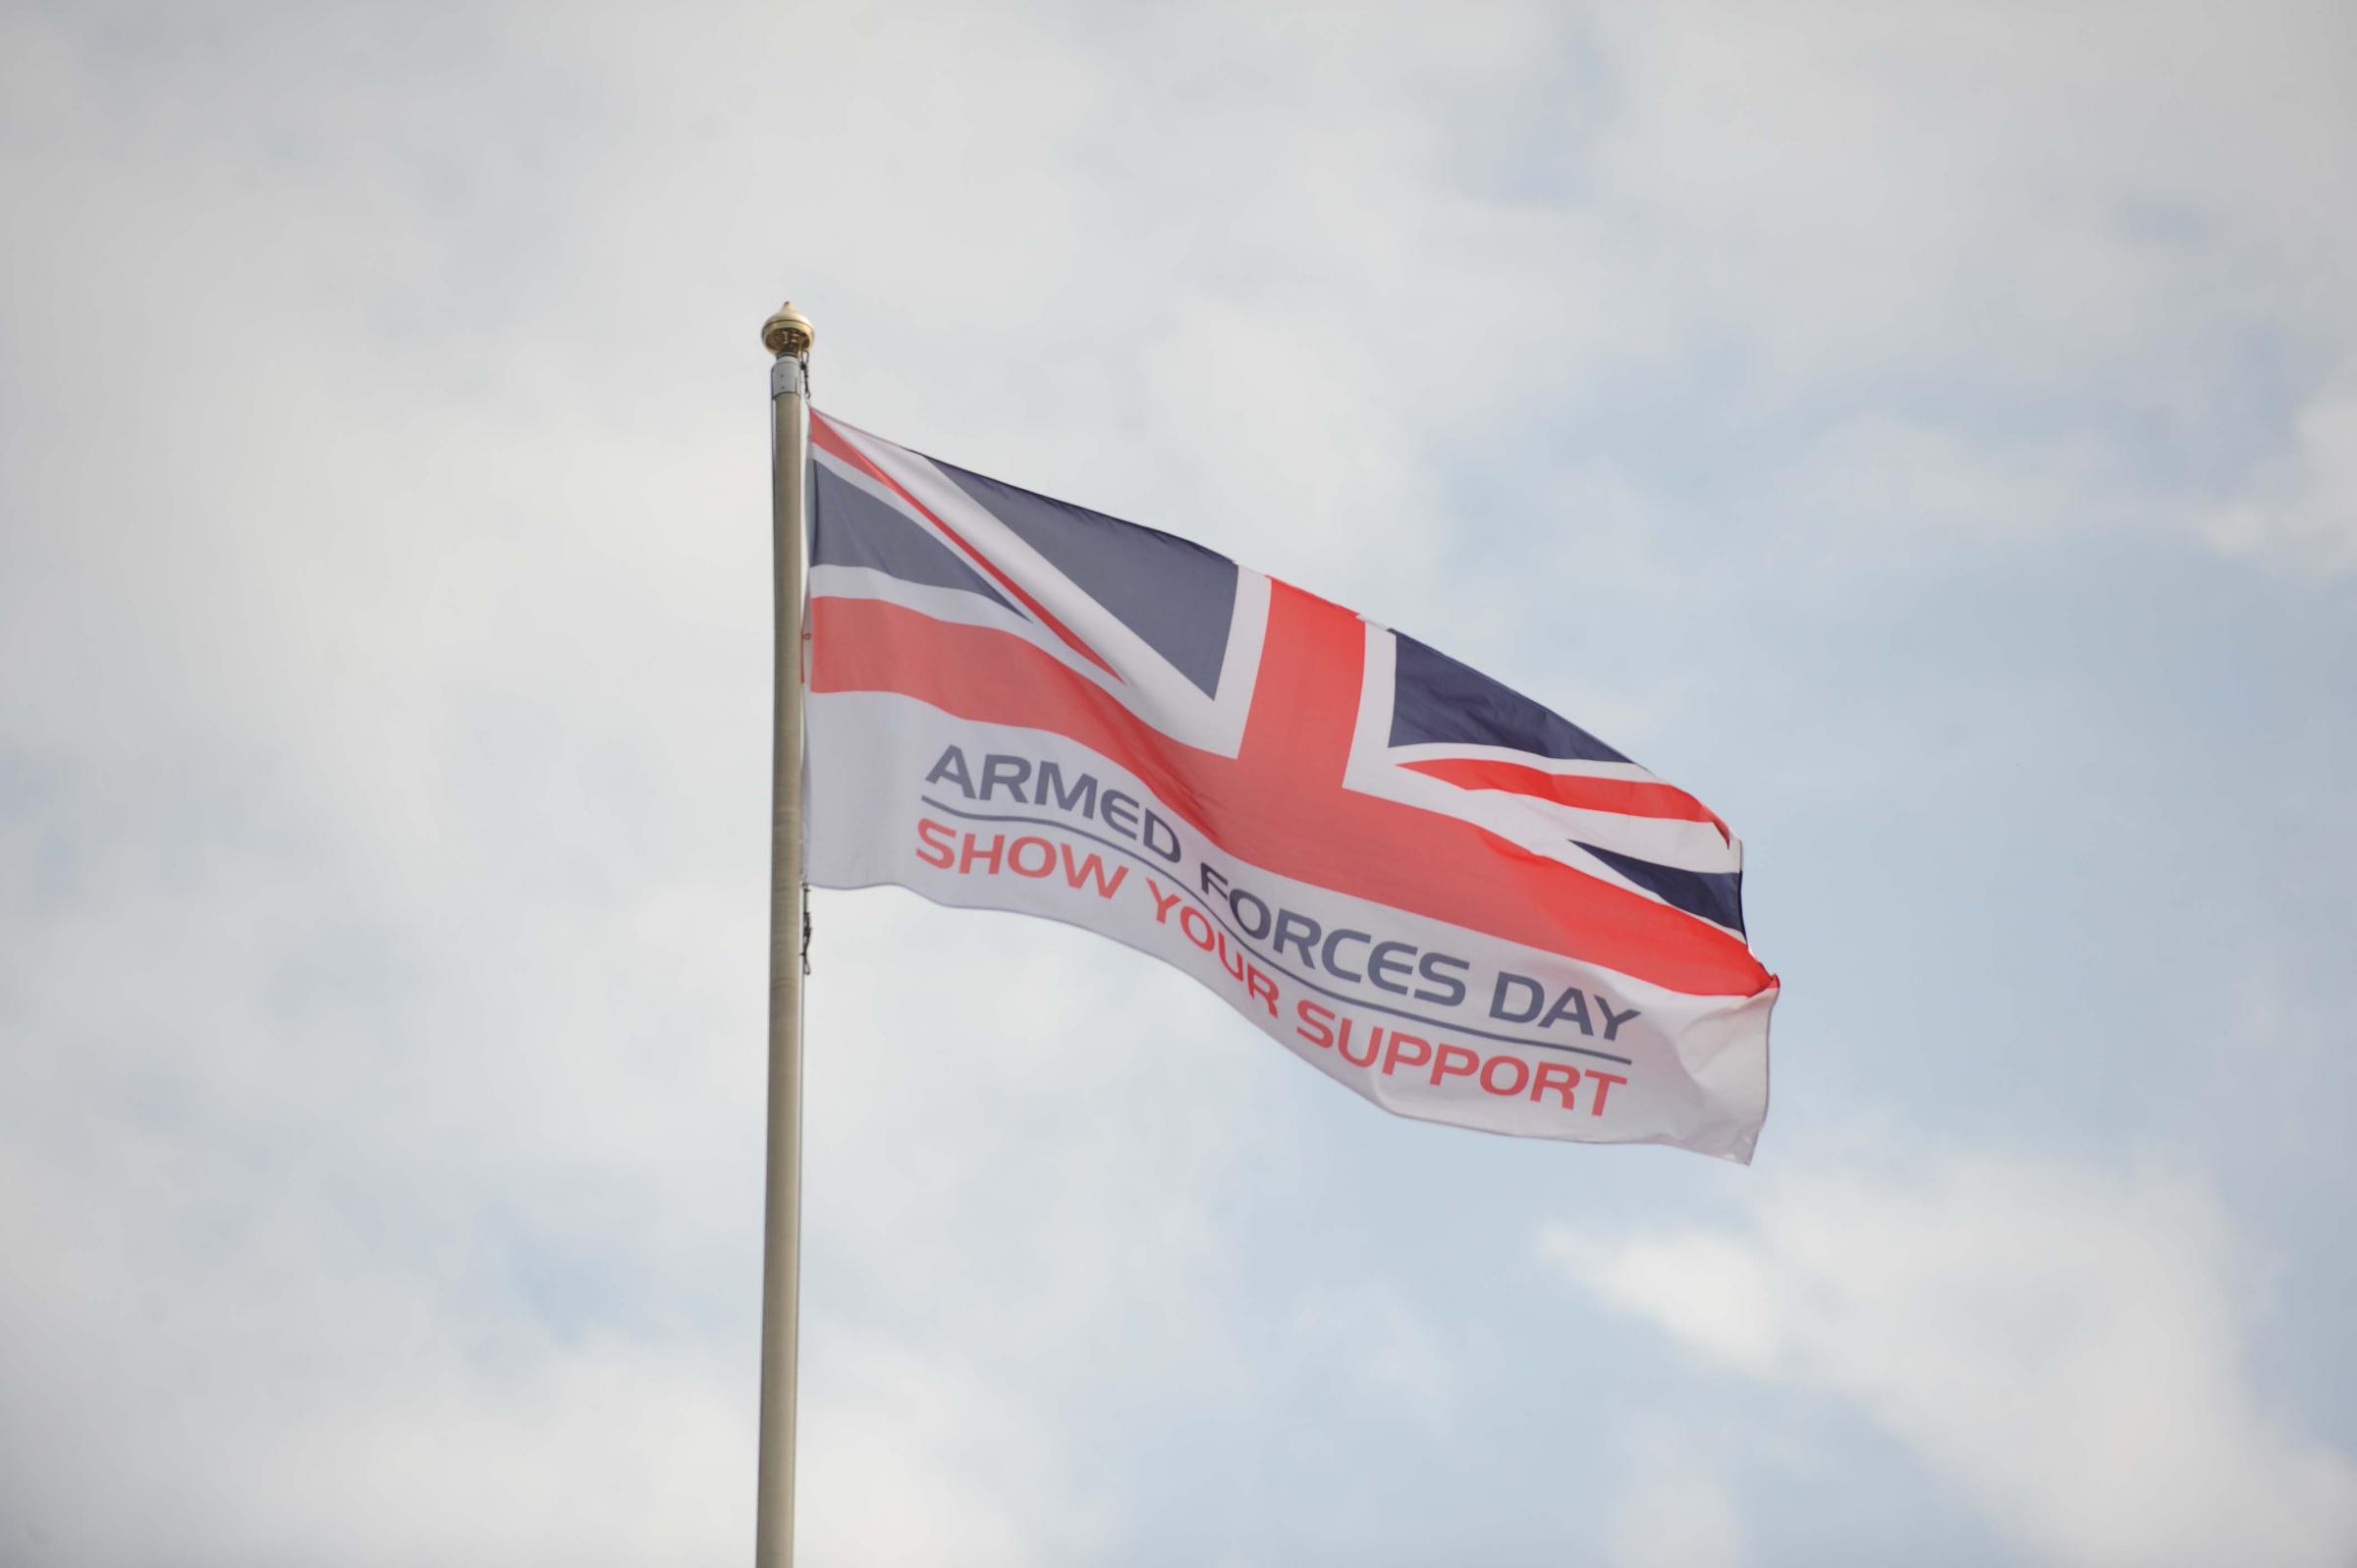 Events to honour the Armed Forces